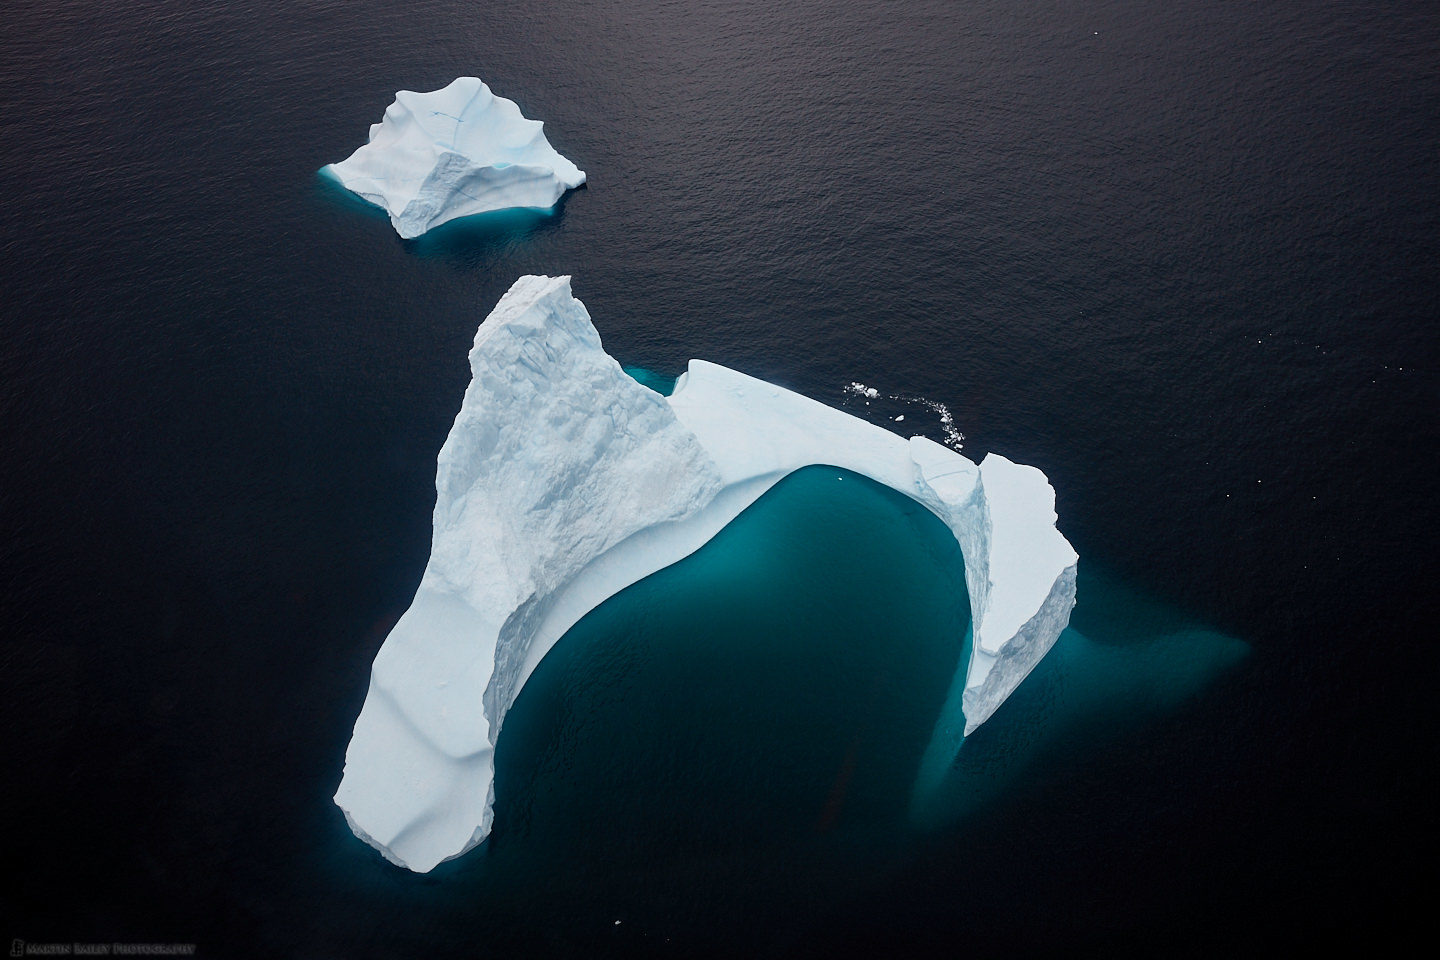 Two Icebergs from Above